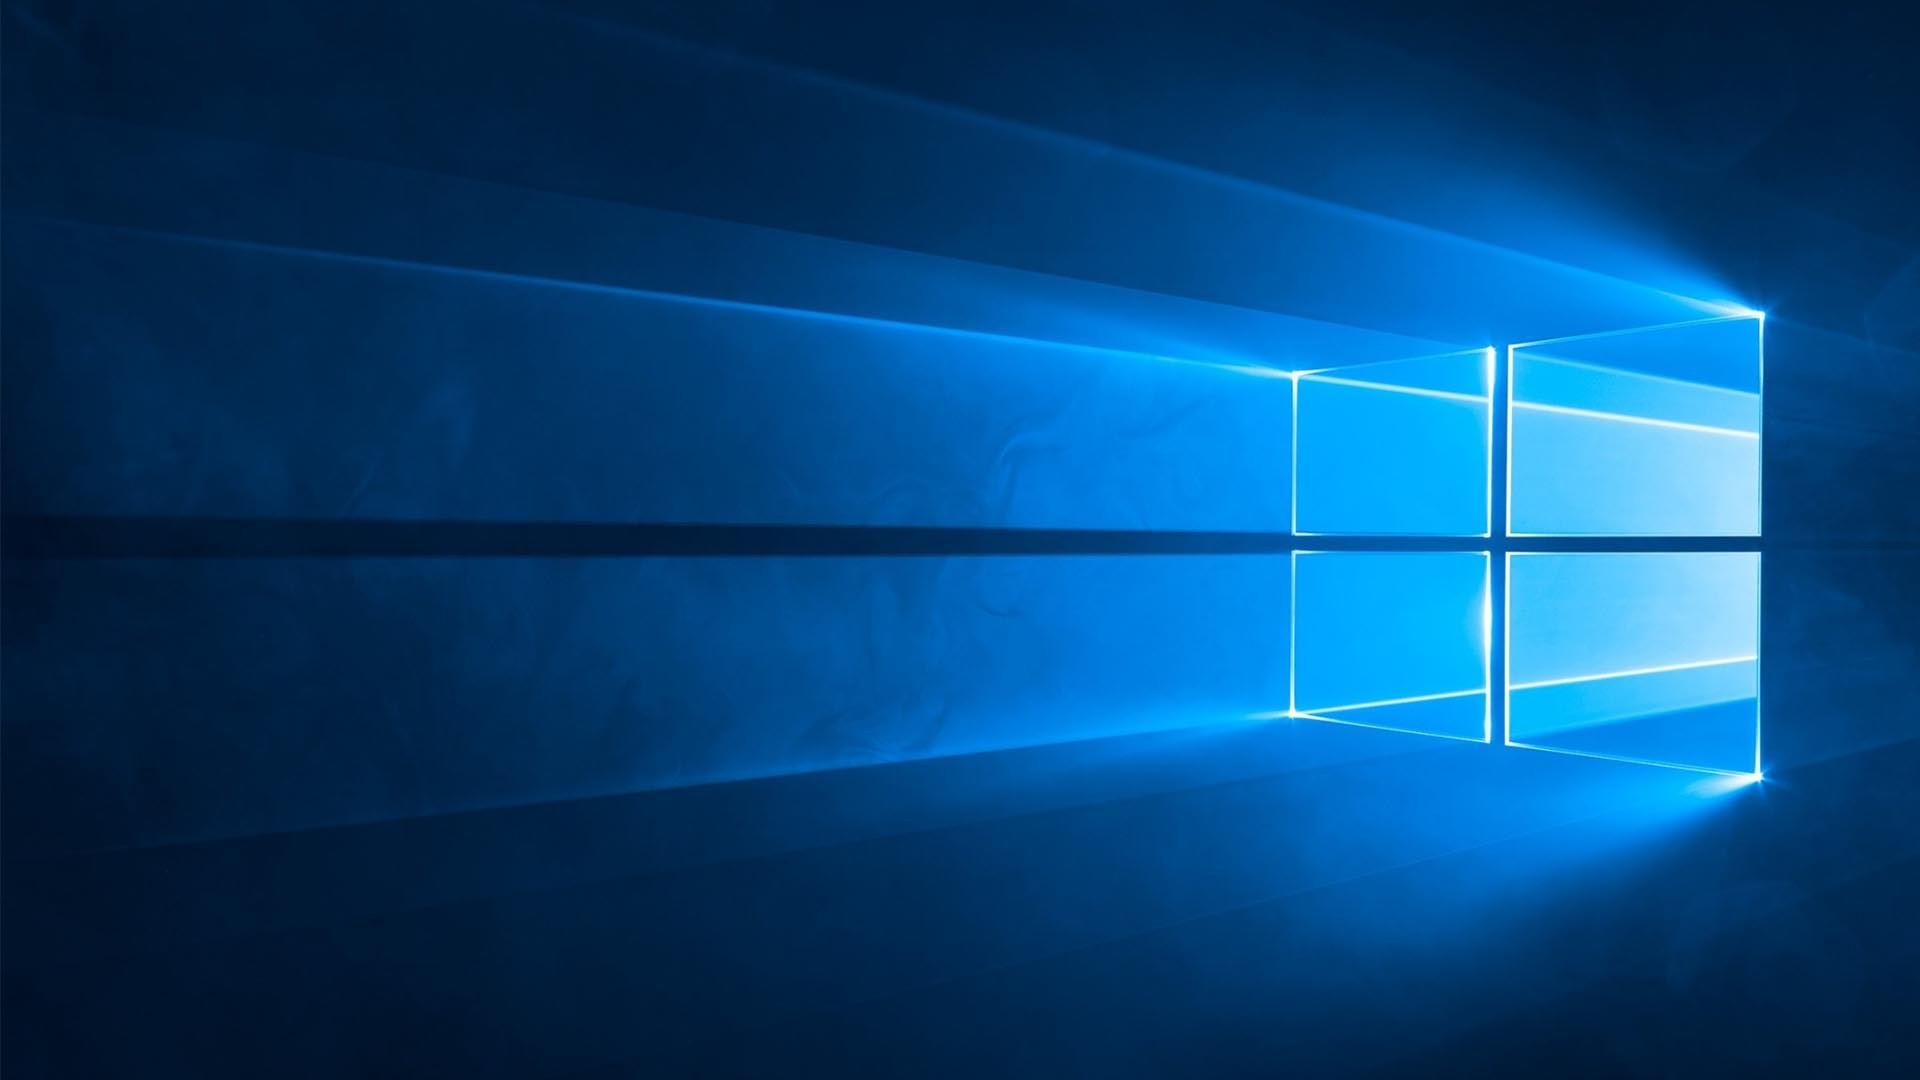 Windows 10 Lock Screen Wallpaper (87+ Images